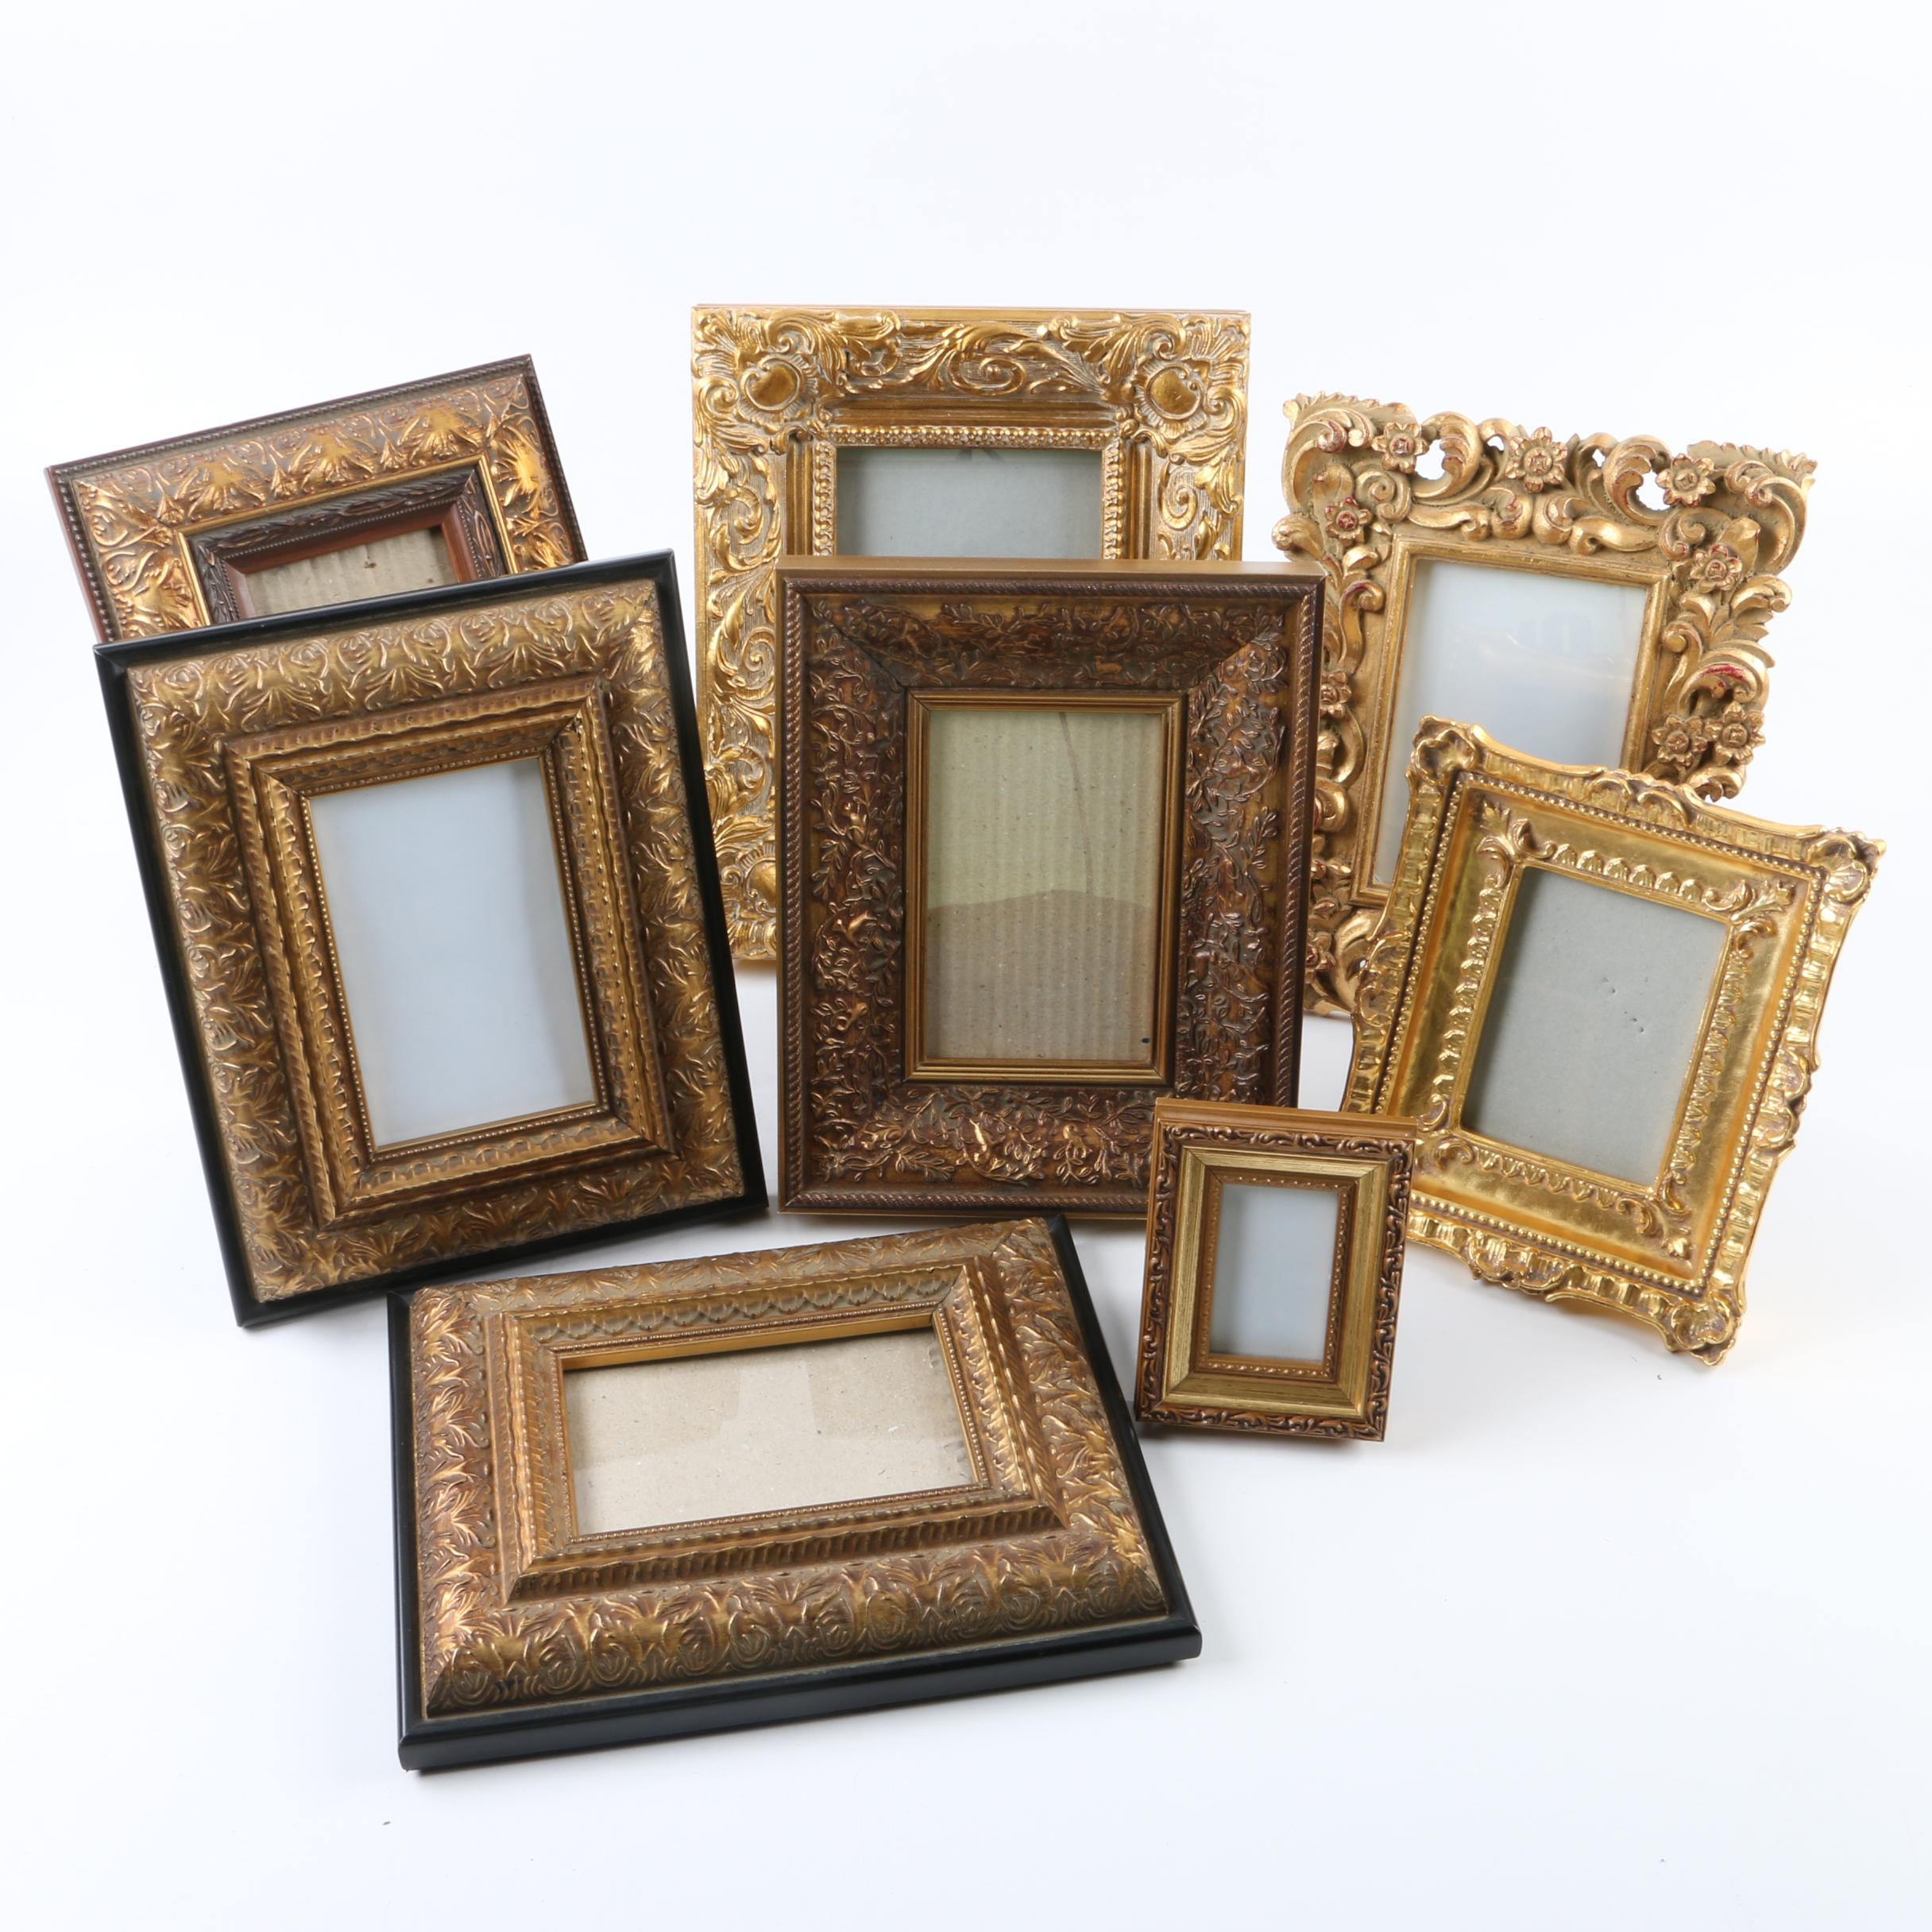 Decorative Wood, Resin, and Metal Frame Assortment